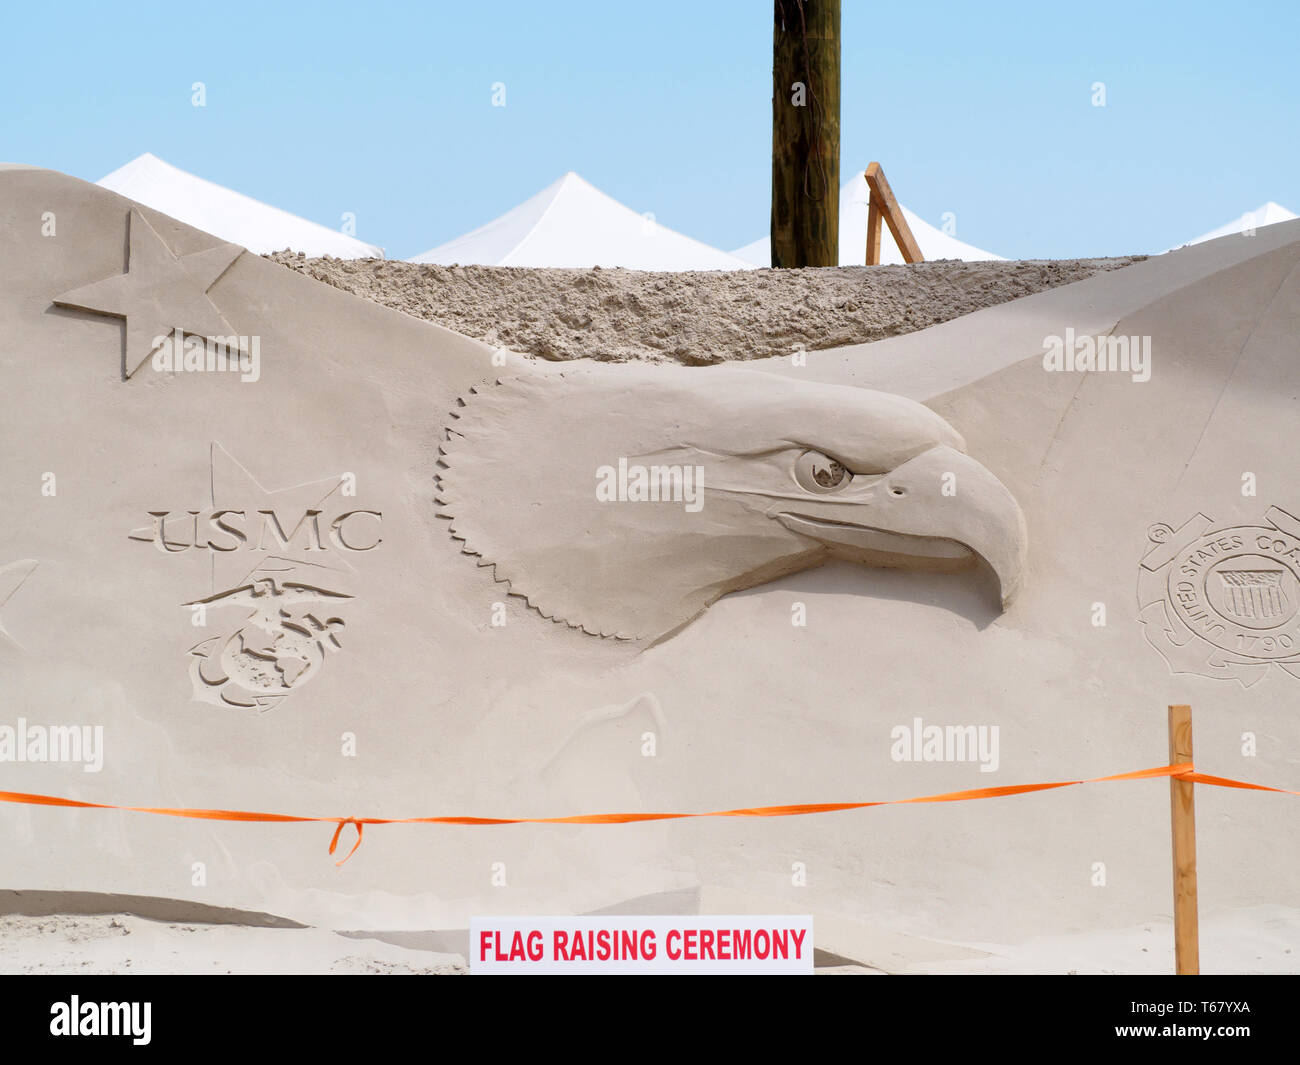 United States Marine Corps logo and eagle sculpted in sand at the 2019 Texas Sandfest in Port Aransas, Texas USA. - Stock Image